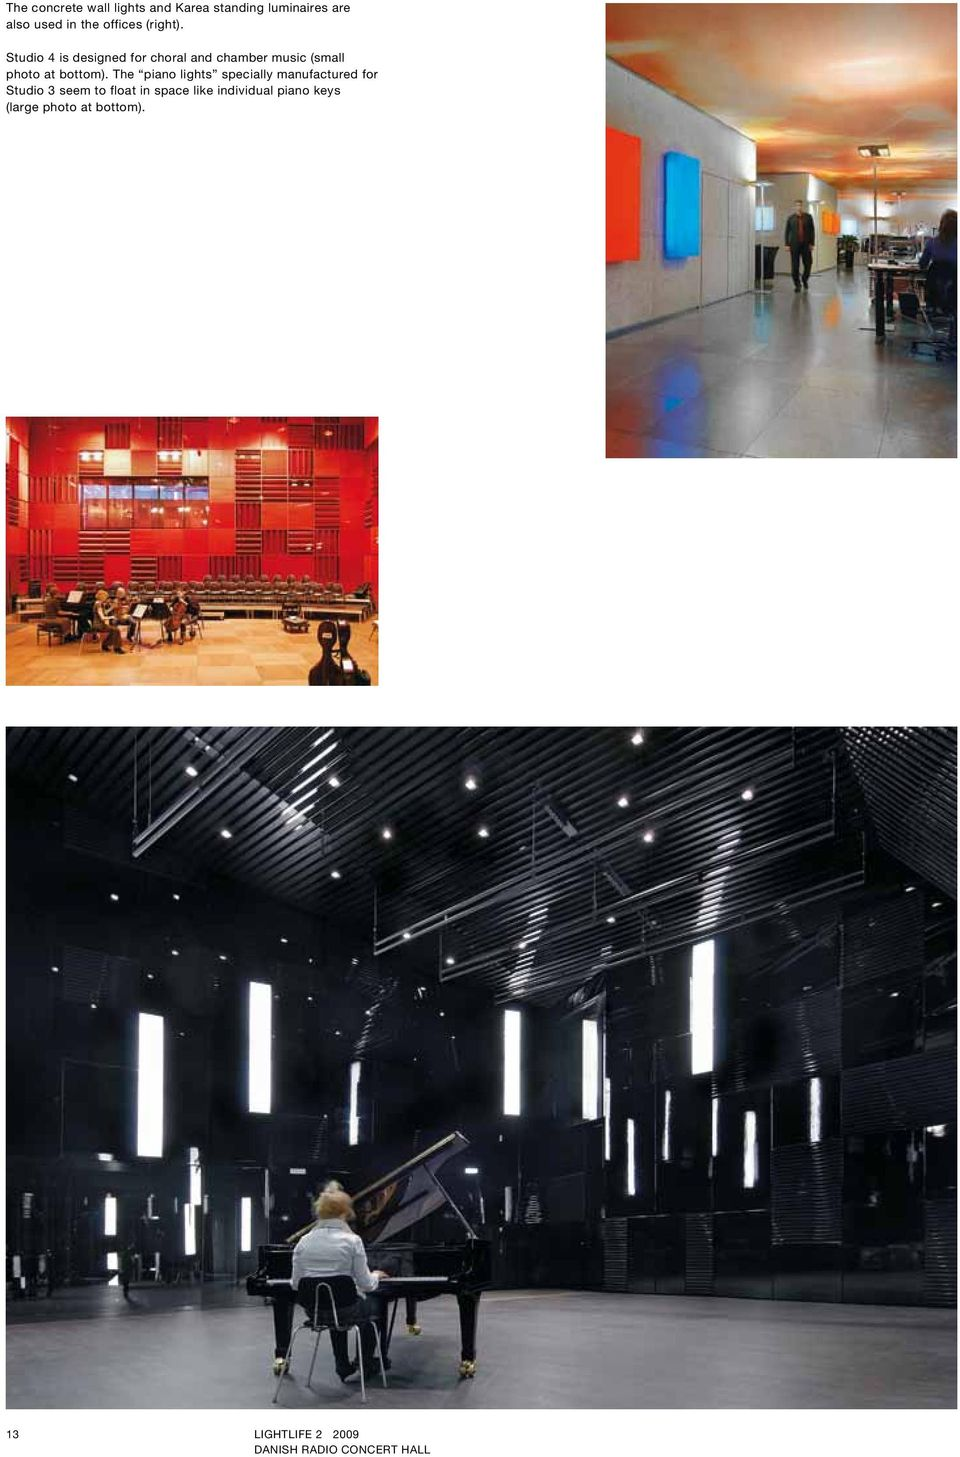 The piano lights specially manufactured for Studio 3 seem to float in space like